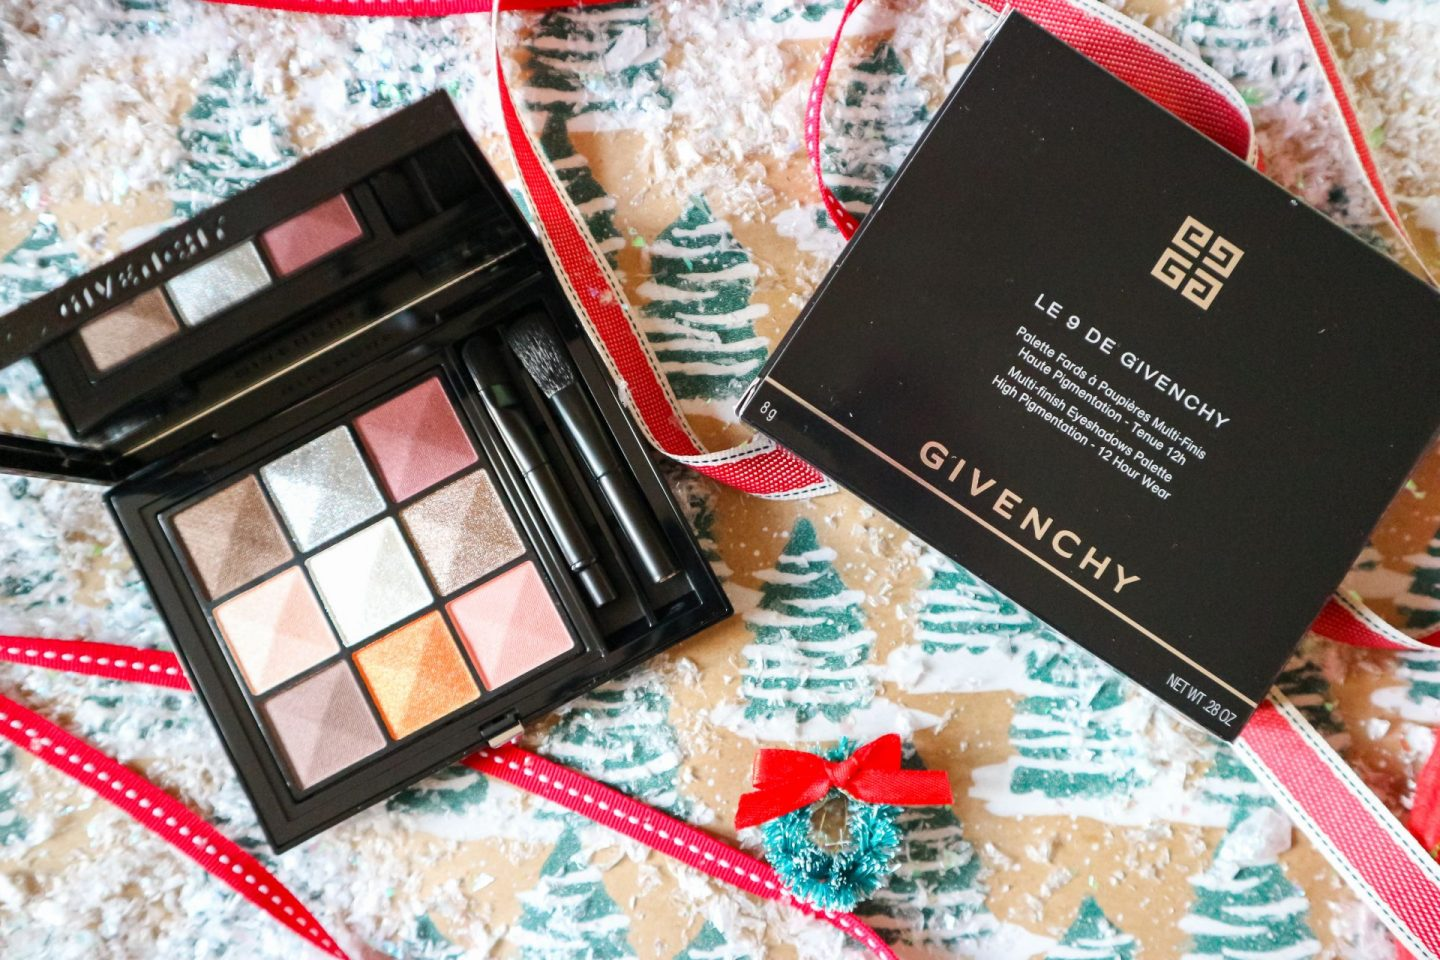 Givenchy Beauty Le 9 De Givenchy 9.01 Multi-Finish Eyeshadow Palette